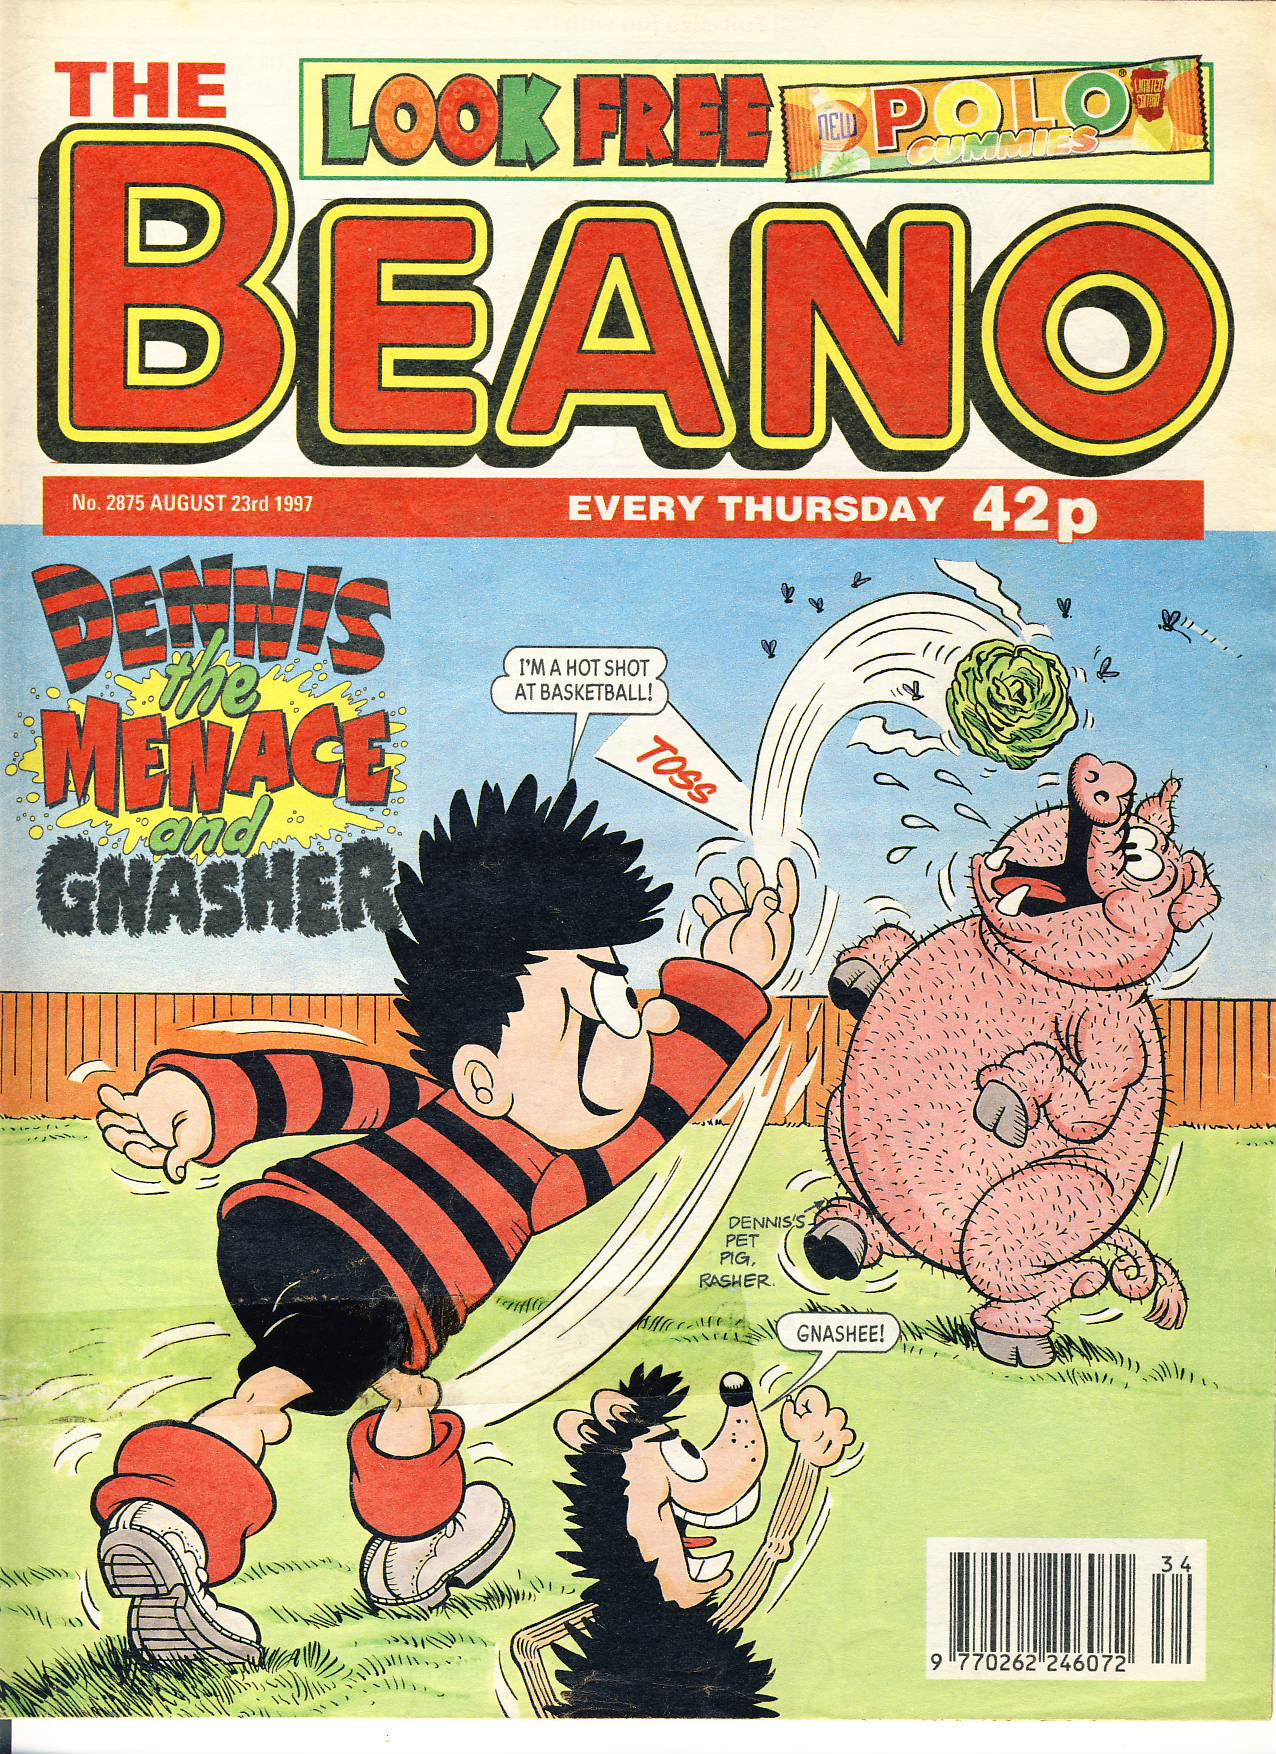 1997 August 23rd BEANO vintage comic Good Gift Christmas Present Birthday Anniversary ref209 a pre-owned item in very good read condition.